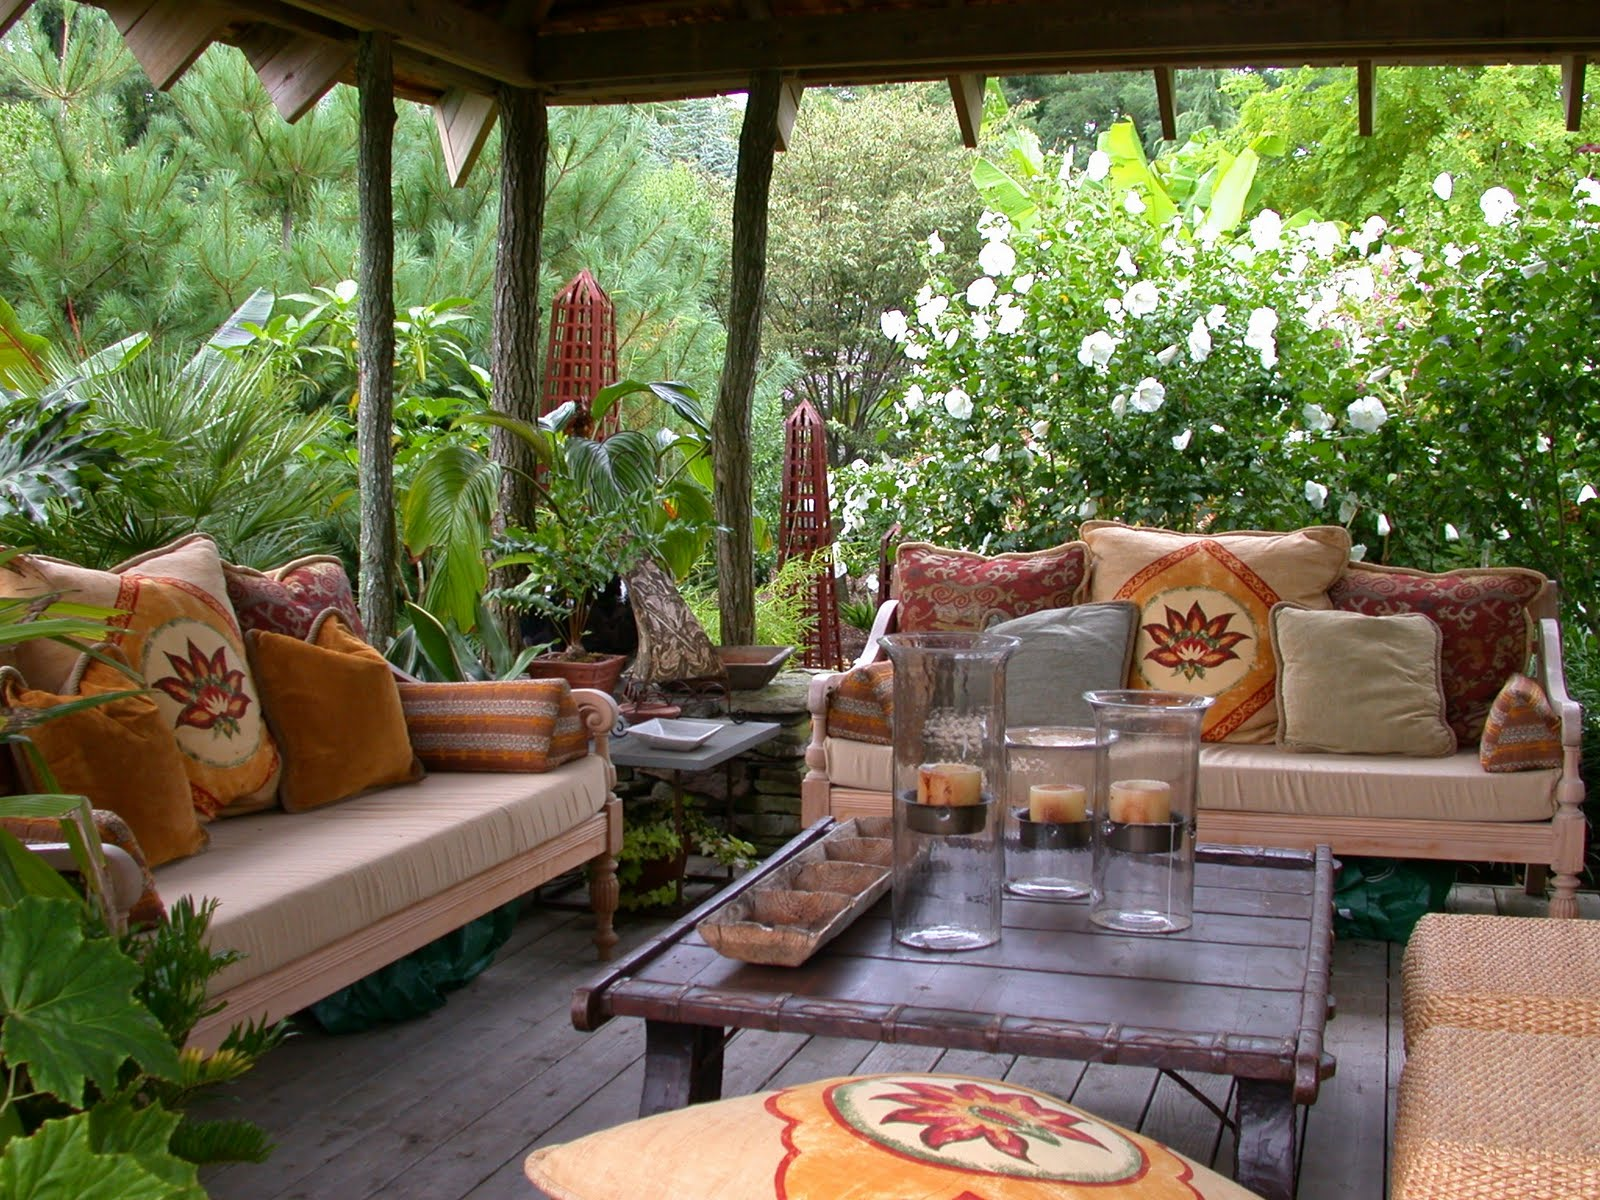 Outside Room Amazing Of Patio Decorating Ideas On a Budget Photo